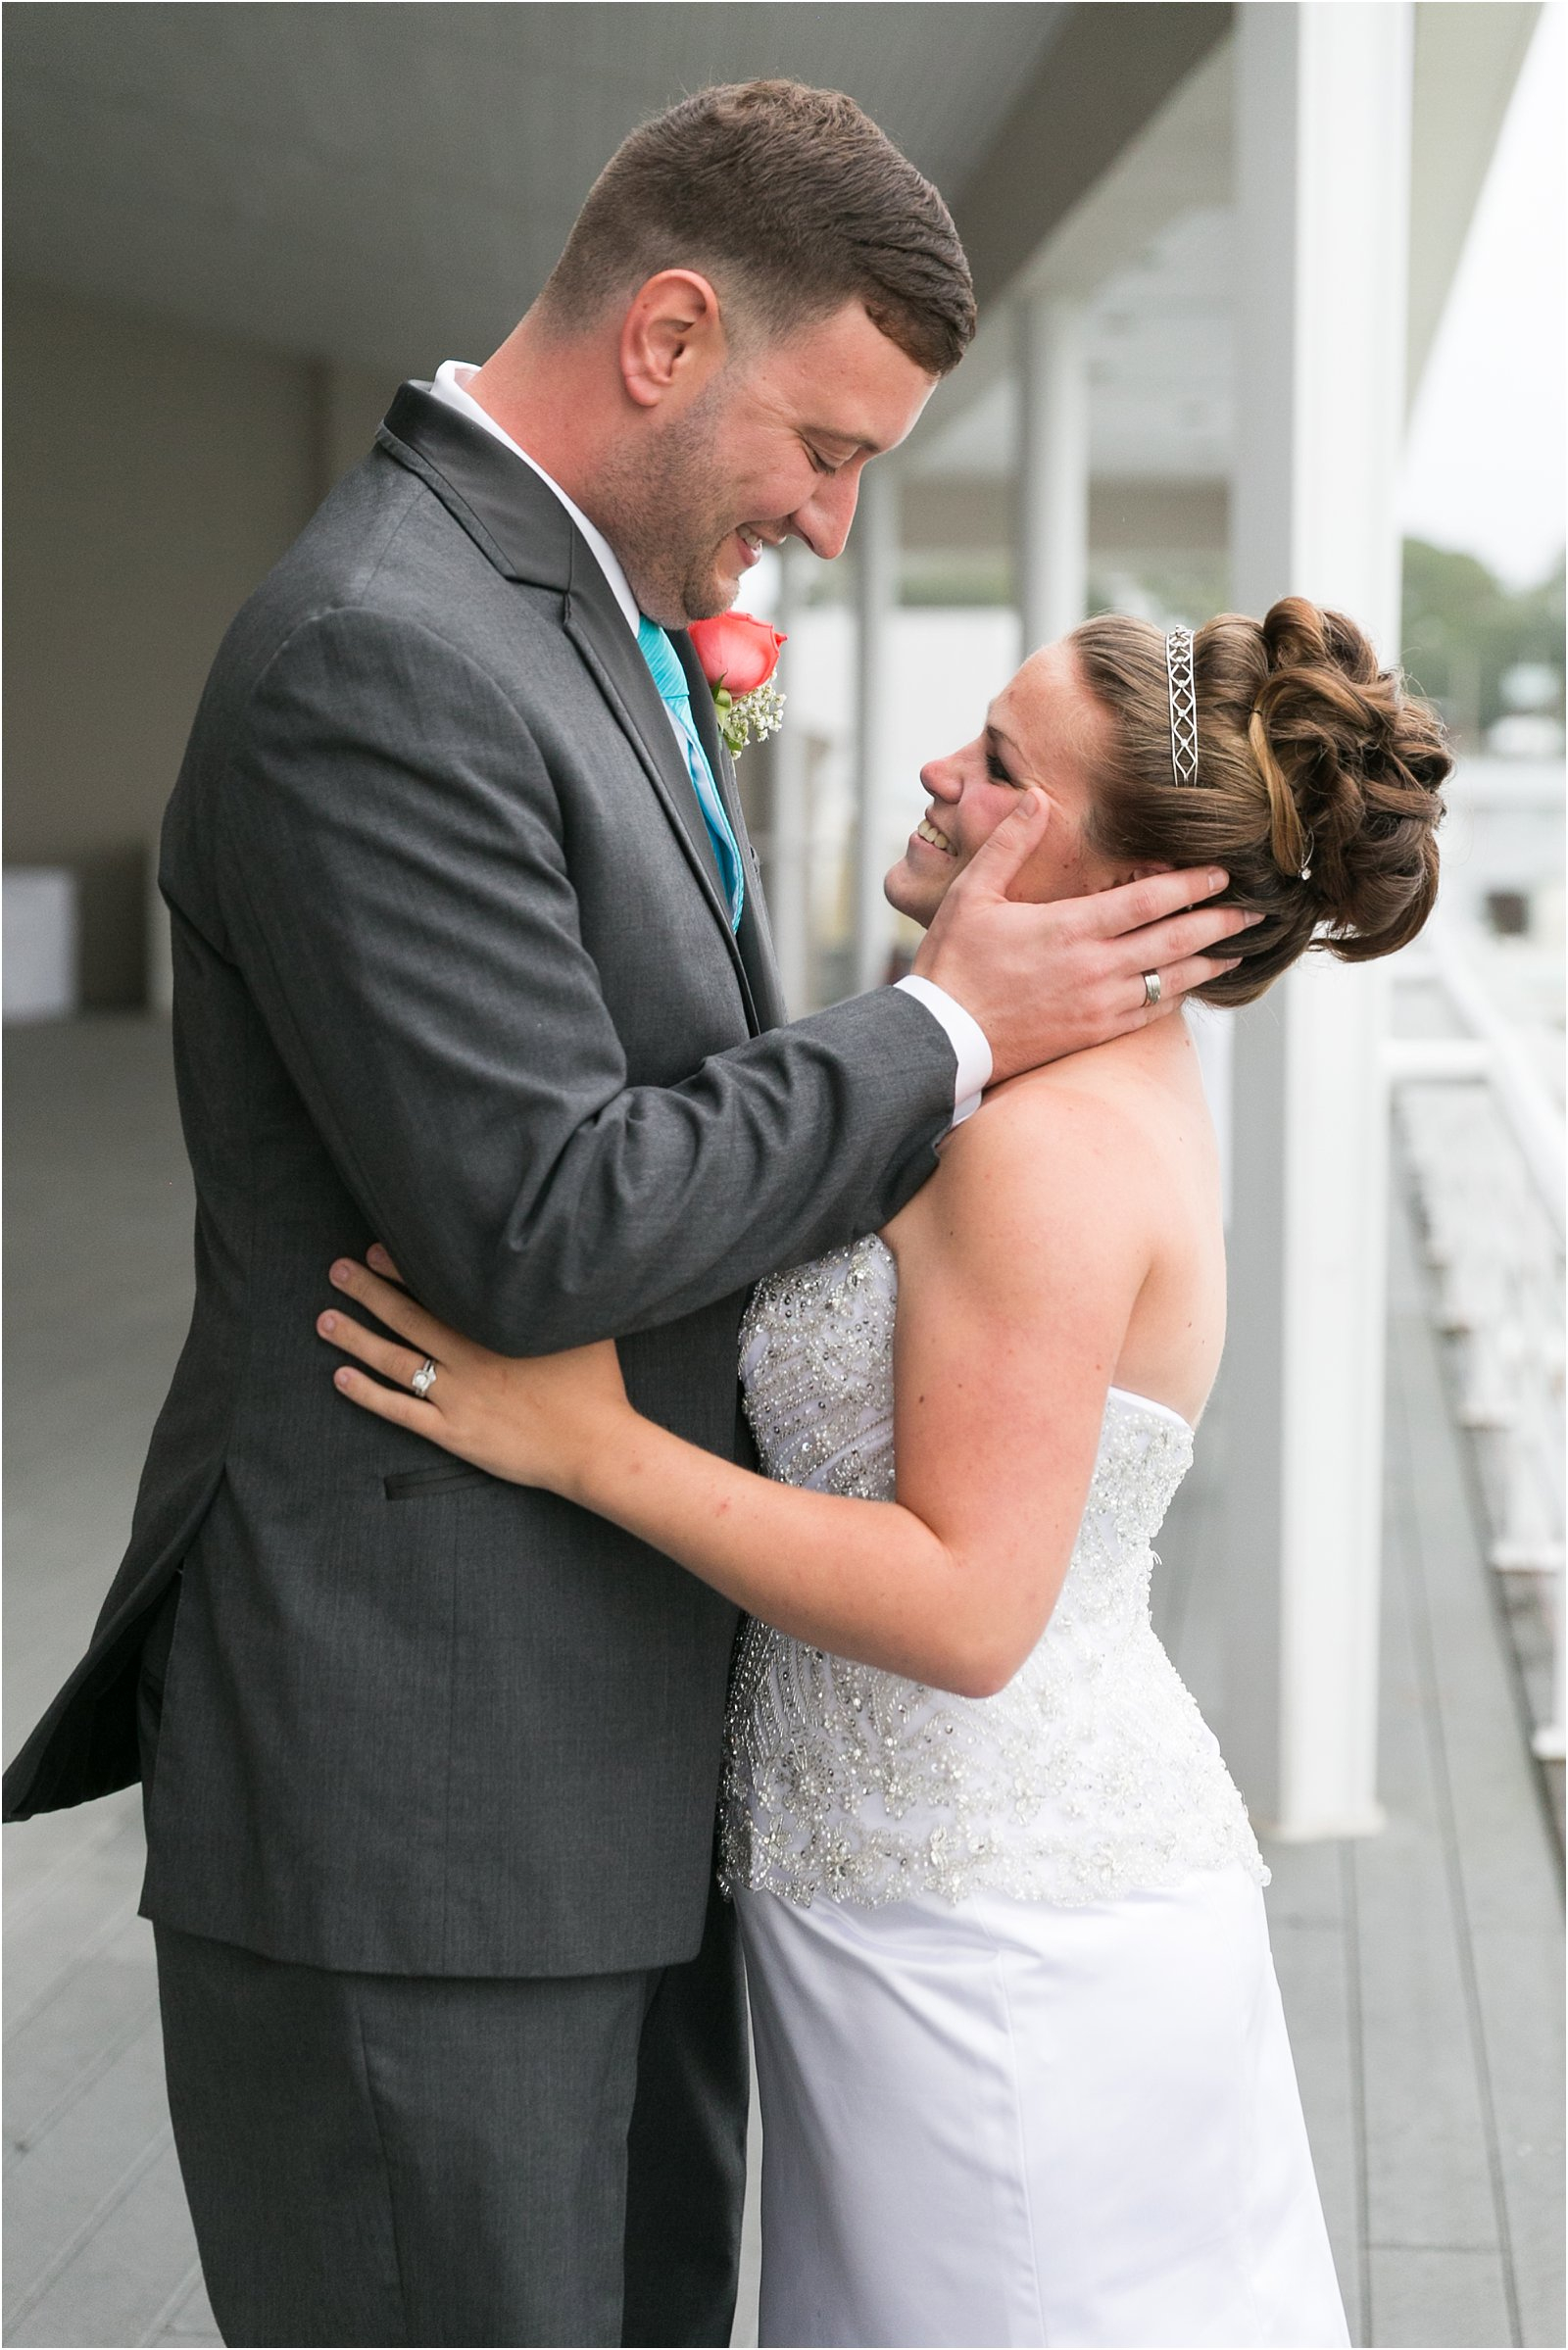 jessica_ryan_photography_lesner_inn_wedding_virginia_beach_rainy_day_0510